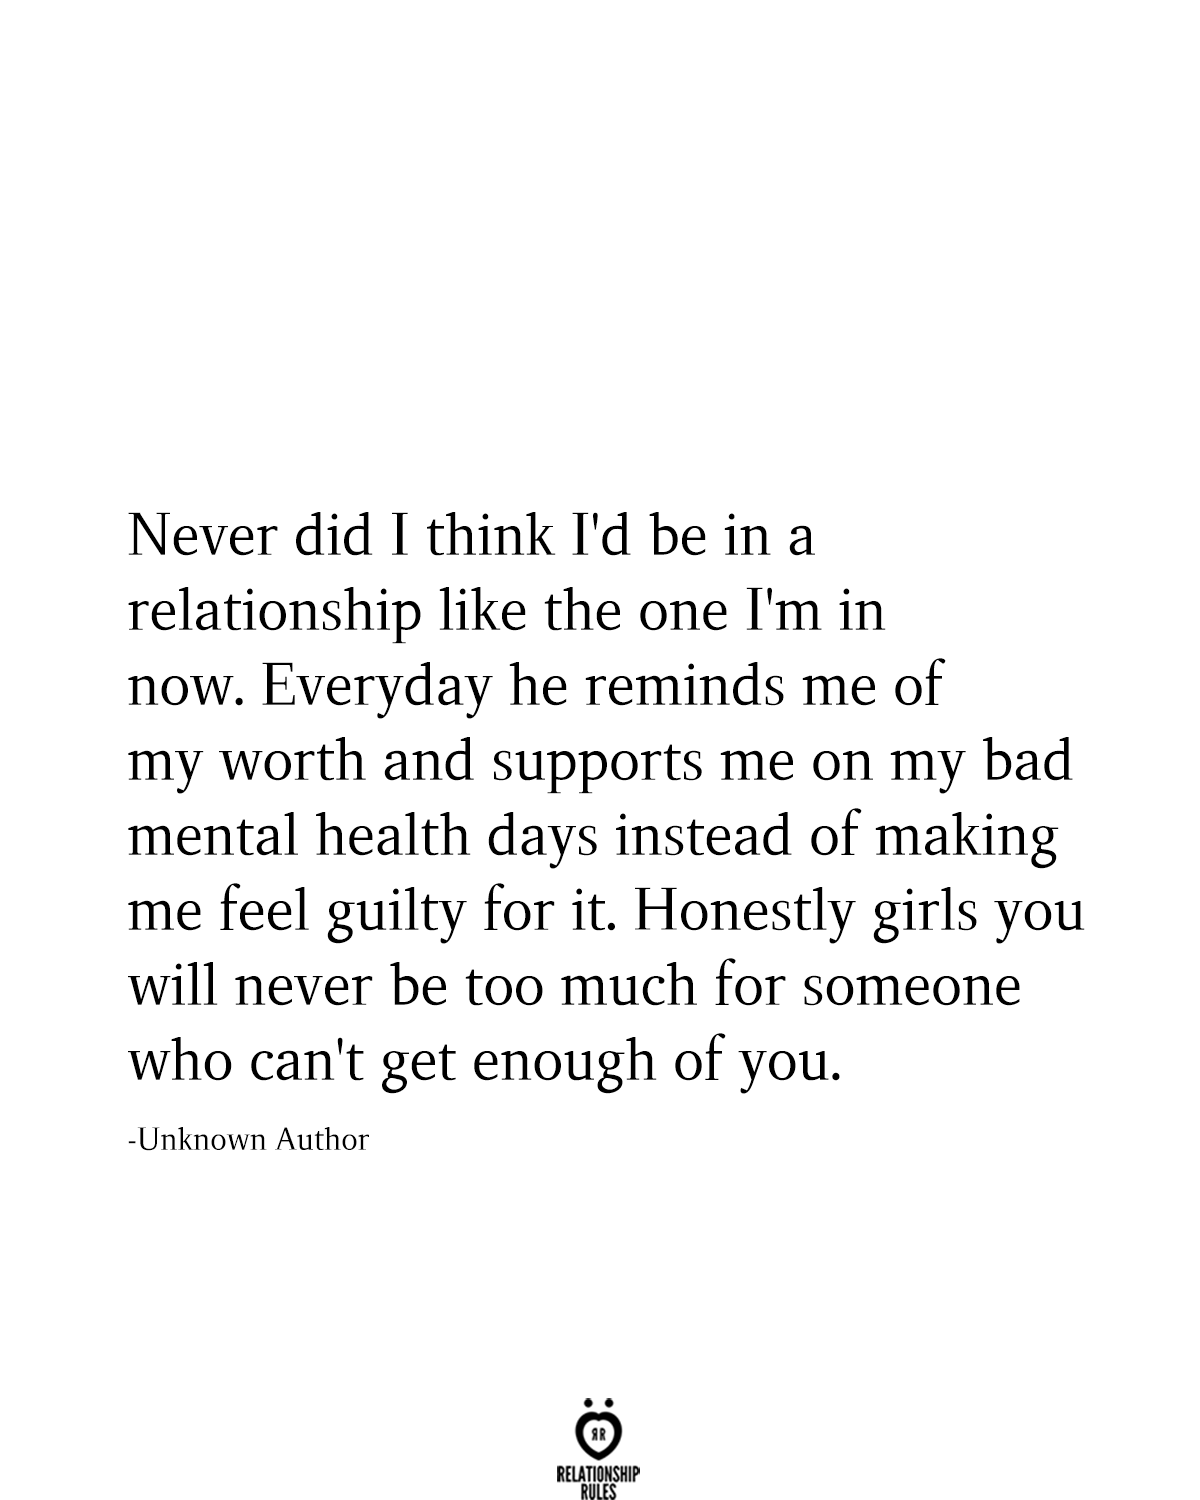 Never did I think I'd be in a relationship like the one I'm in now. Everyday he reminds me of my worth and supports me on my bad mental health days instead of making me feel guilty for it. Honestly girls you will never be too much for someone who can't get enough of you.  -Unknown Author